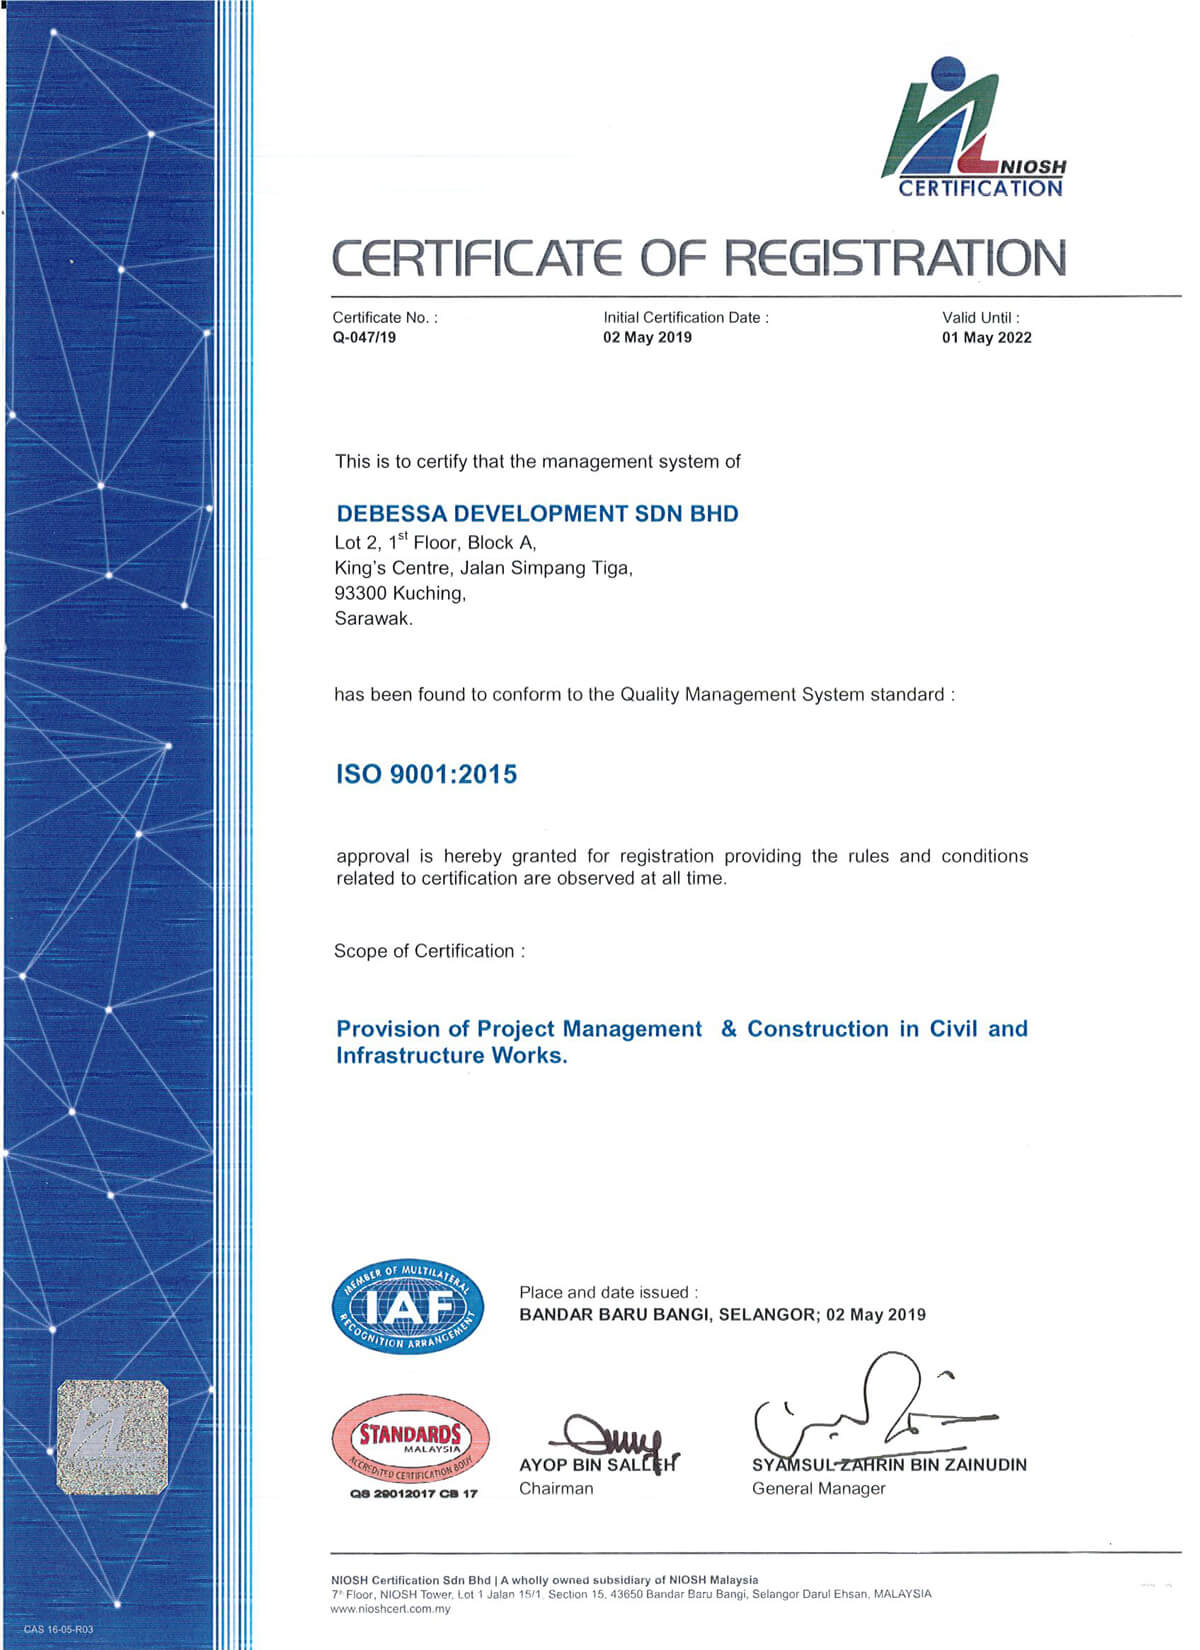 Provision of Project Management & Construction in Civil and Infrastructure Works - ISO 9001:2015